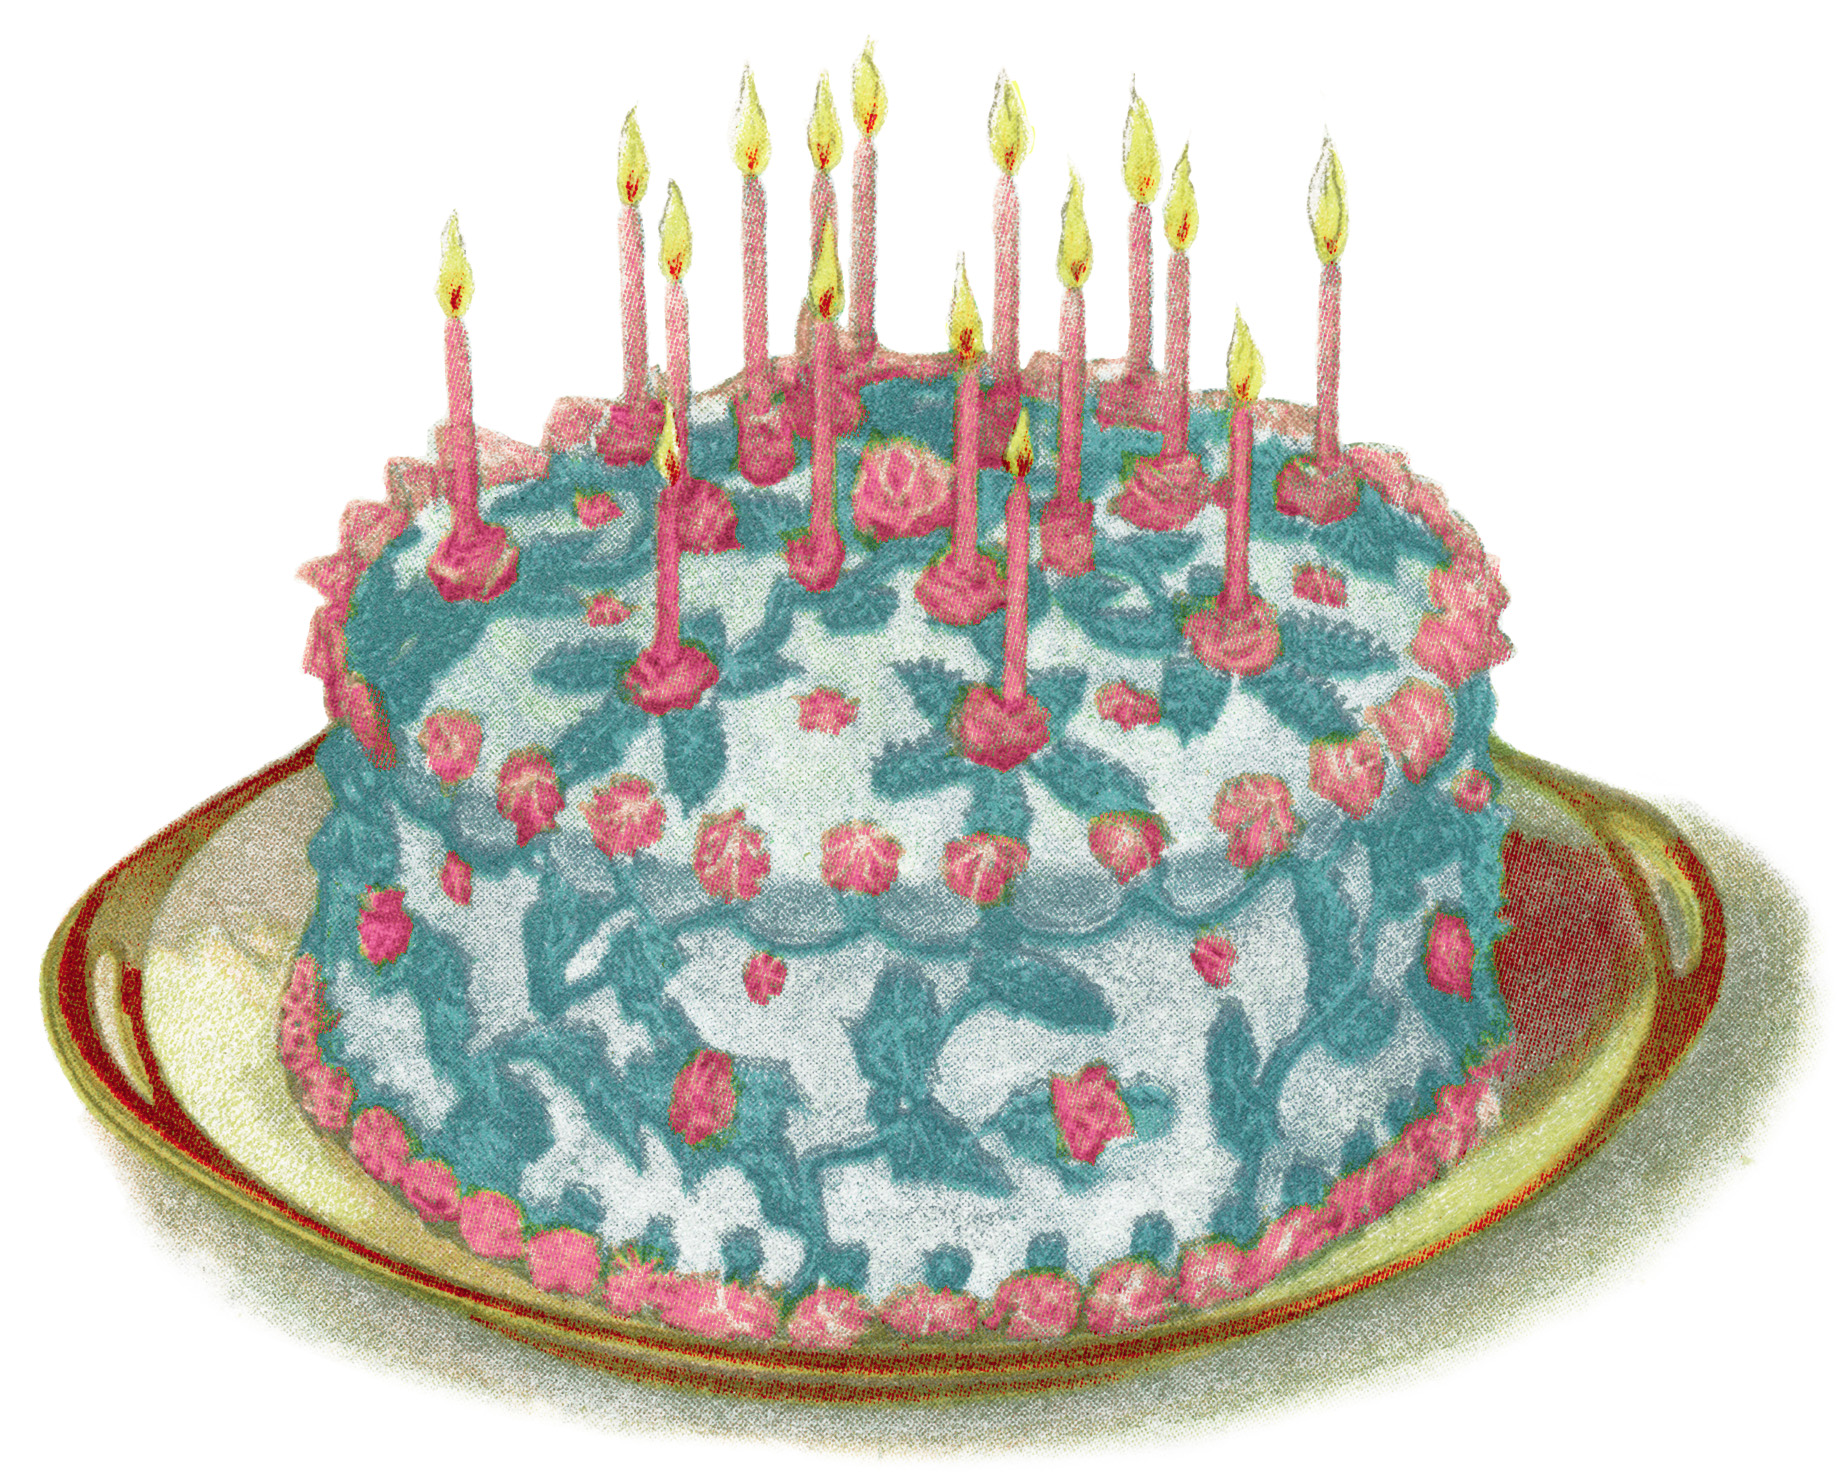 Free Vintage Birthday Cake Illustration Free Vintage Illustrations